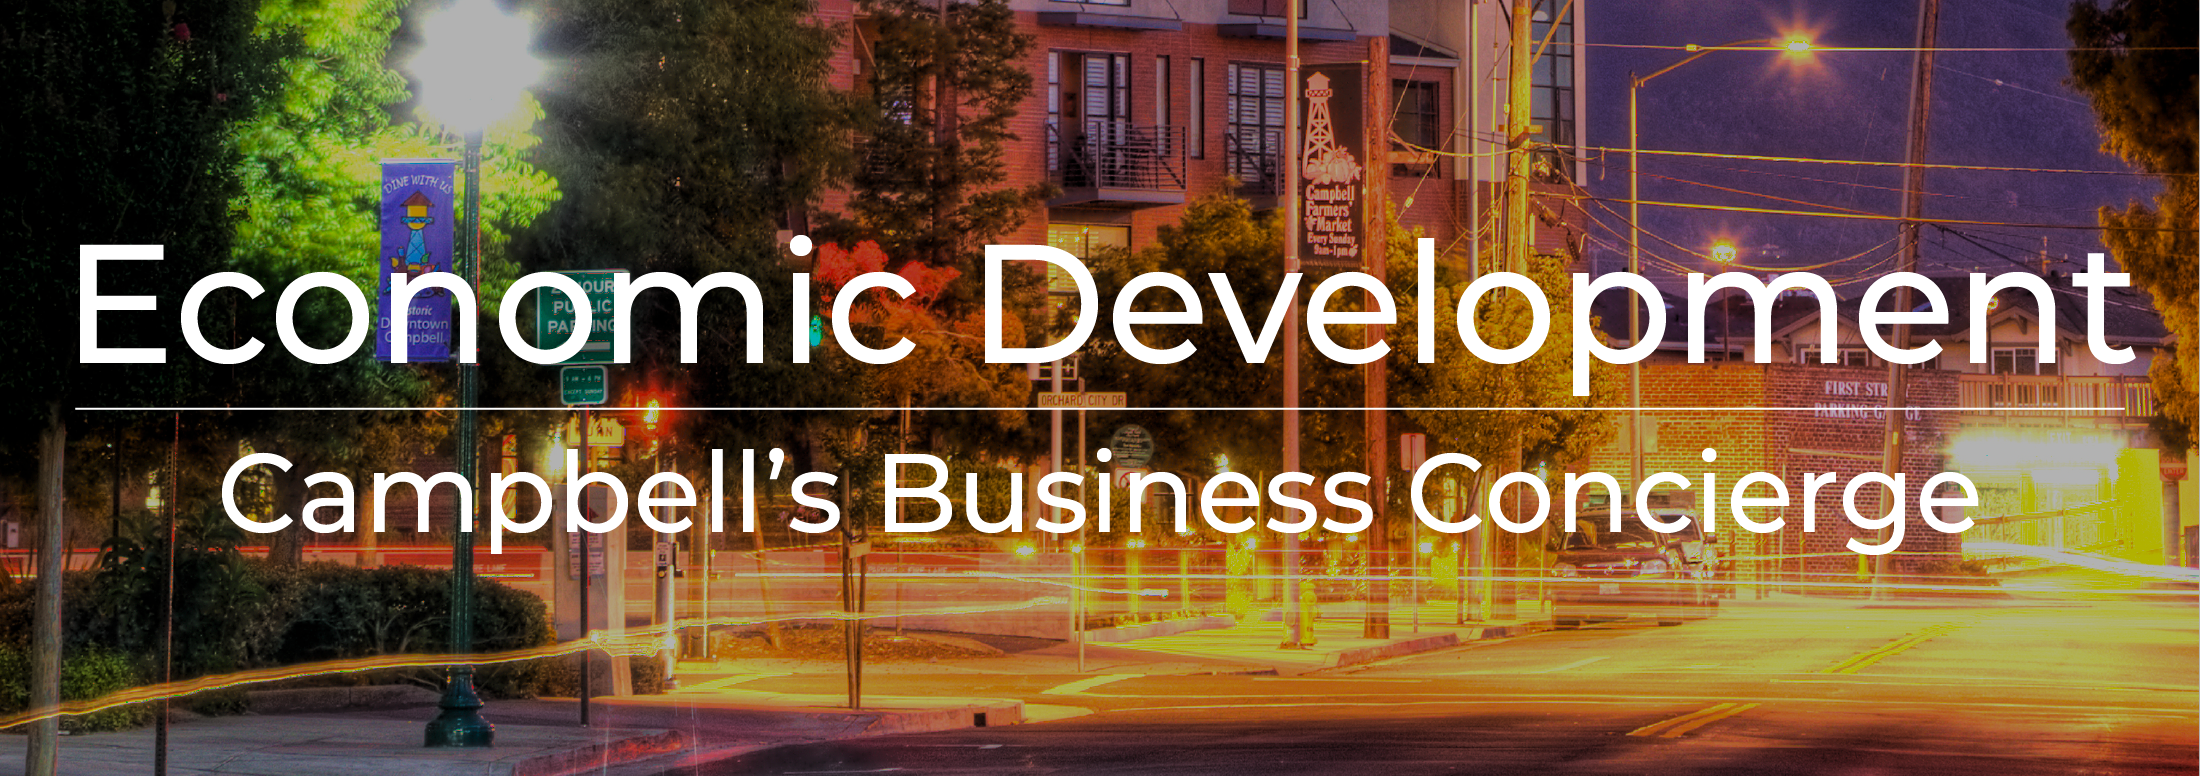 """Economic Development - Campbell's Business Concierge"" in text on top of evening  image of"